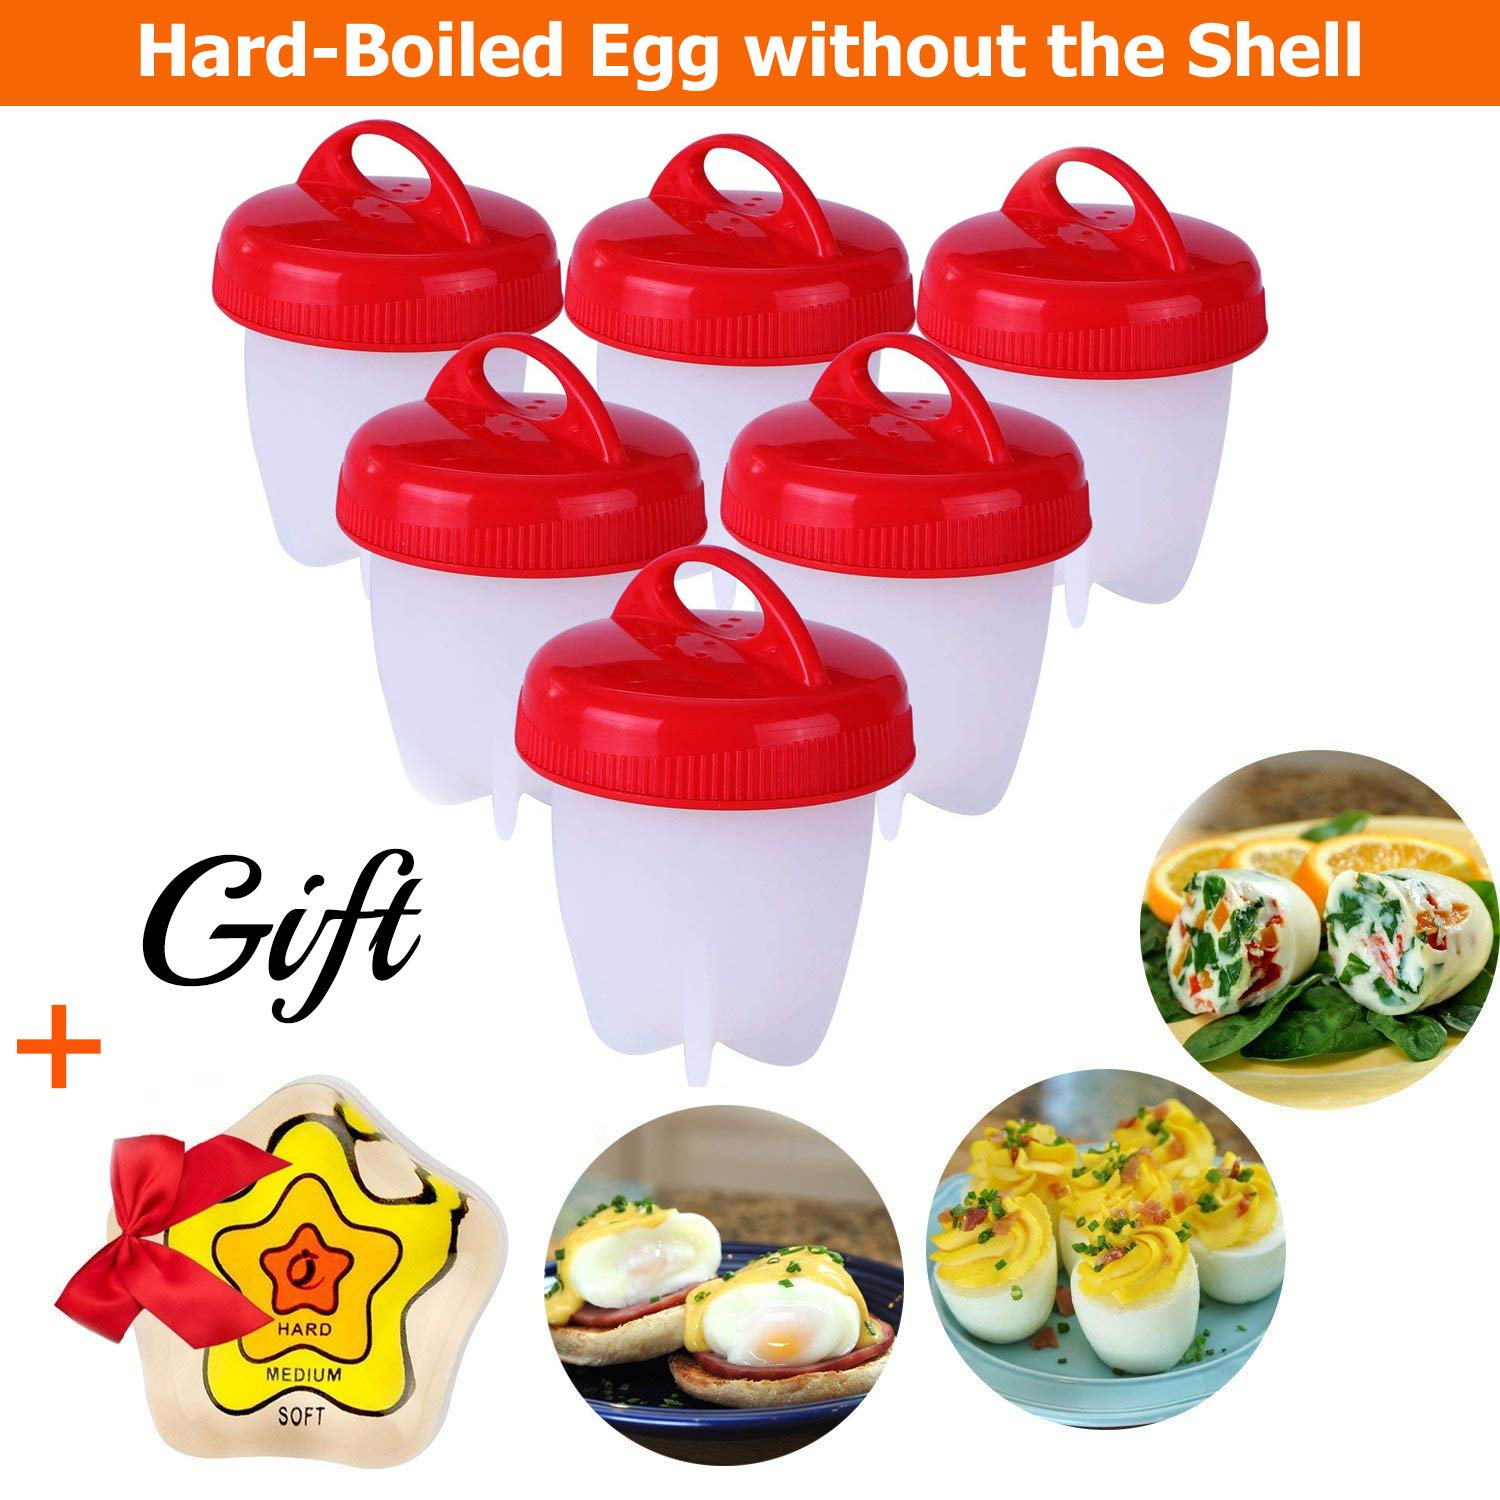 Silicone Egg Cooker - Hard Boiled Eggs Without The Shell, Non Stick Silicone Poacher, Hard Boiled Egg Maker, Egg Boiler, No Shell, 6 Pack & New Color Changing Egg Timer LOOXOS